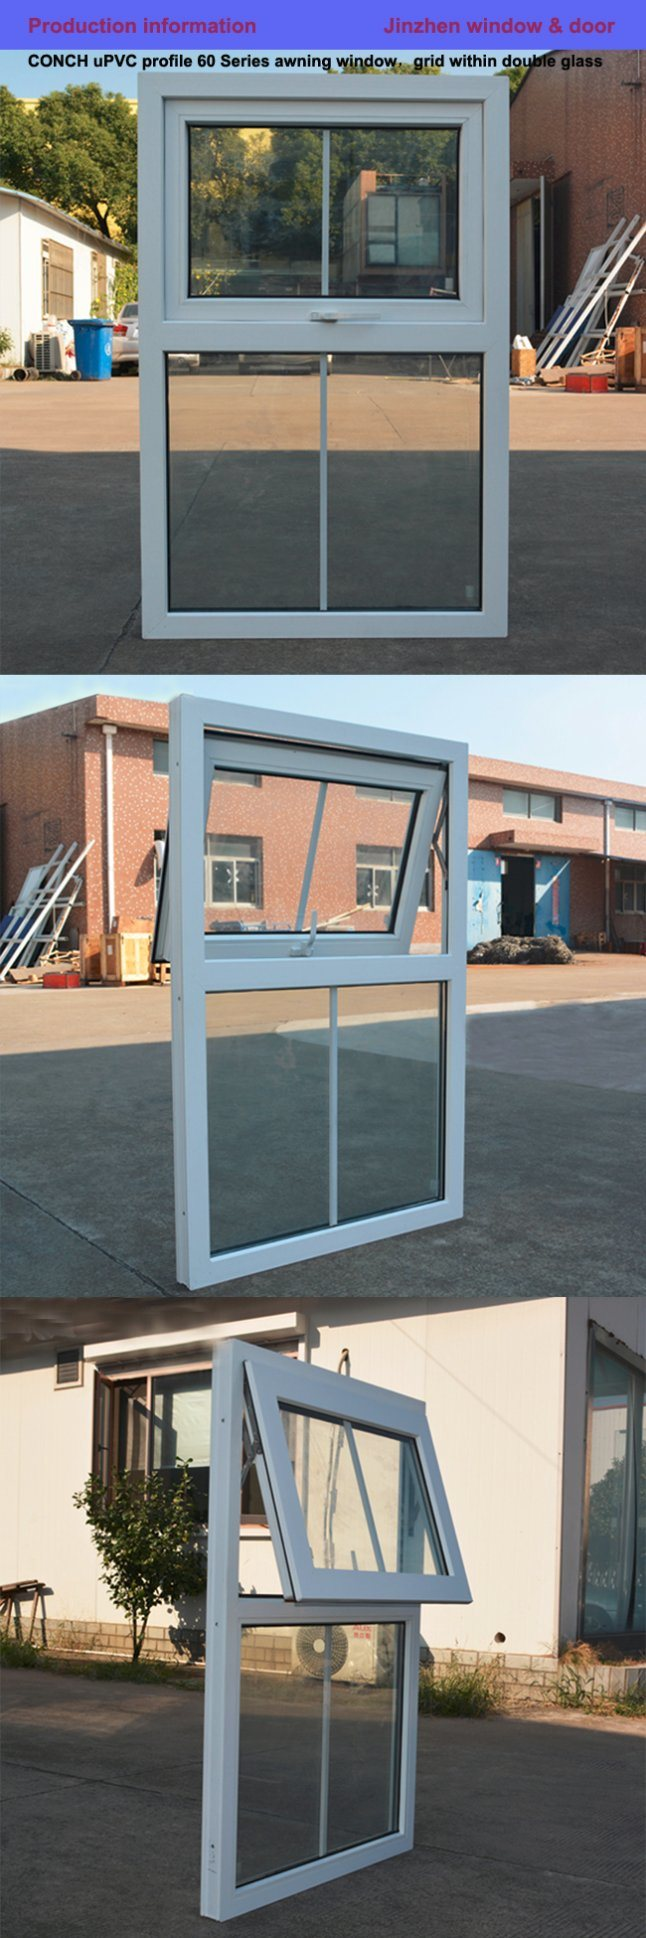 Double awning windows - White Colour Upvc Profile Awning Window Double Glass With Grid K02041